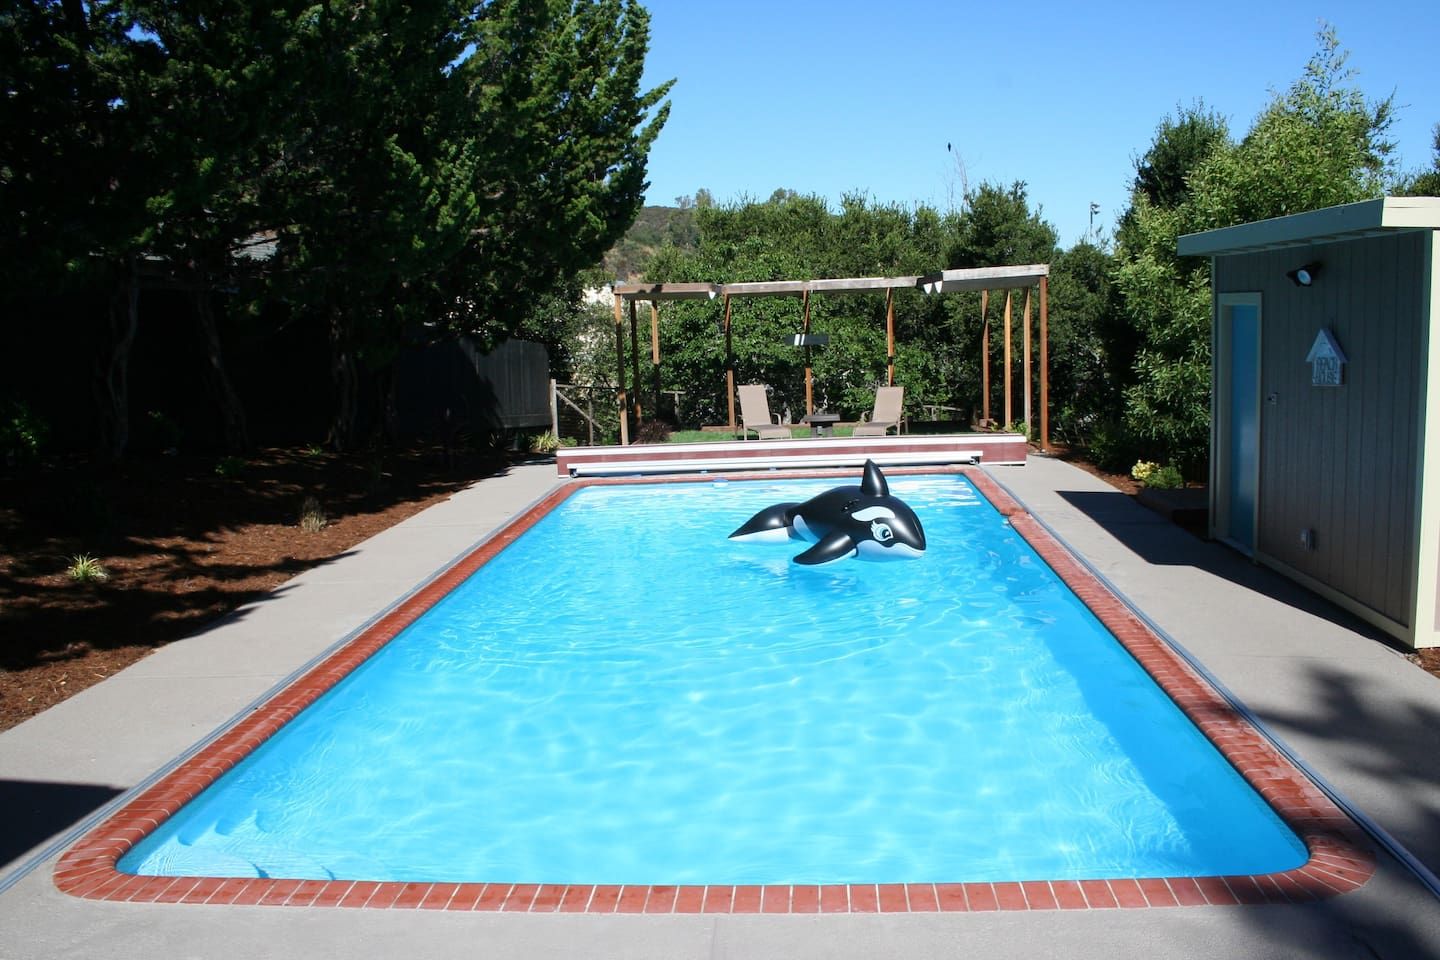 Please enjoy our pool at your convenience!